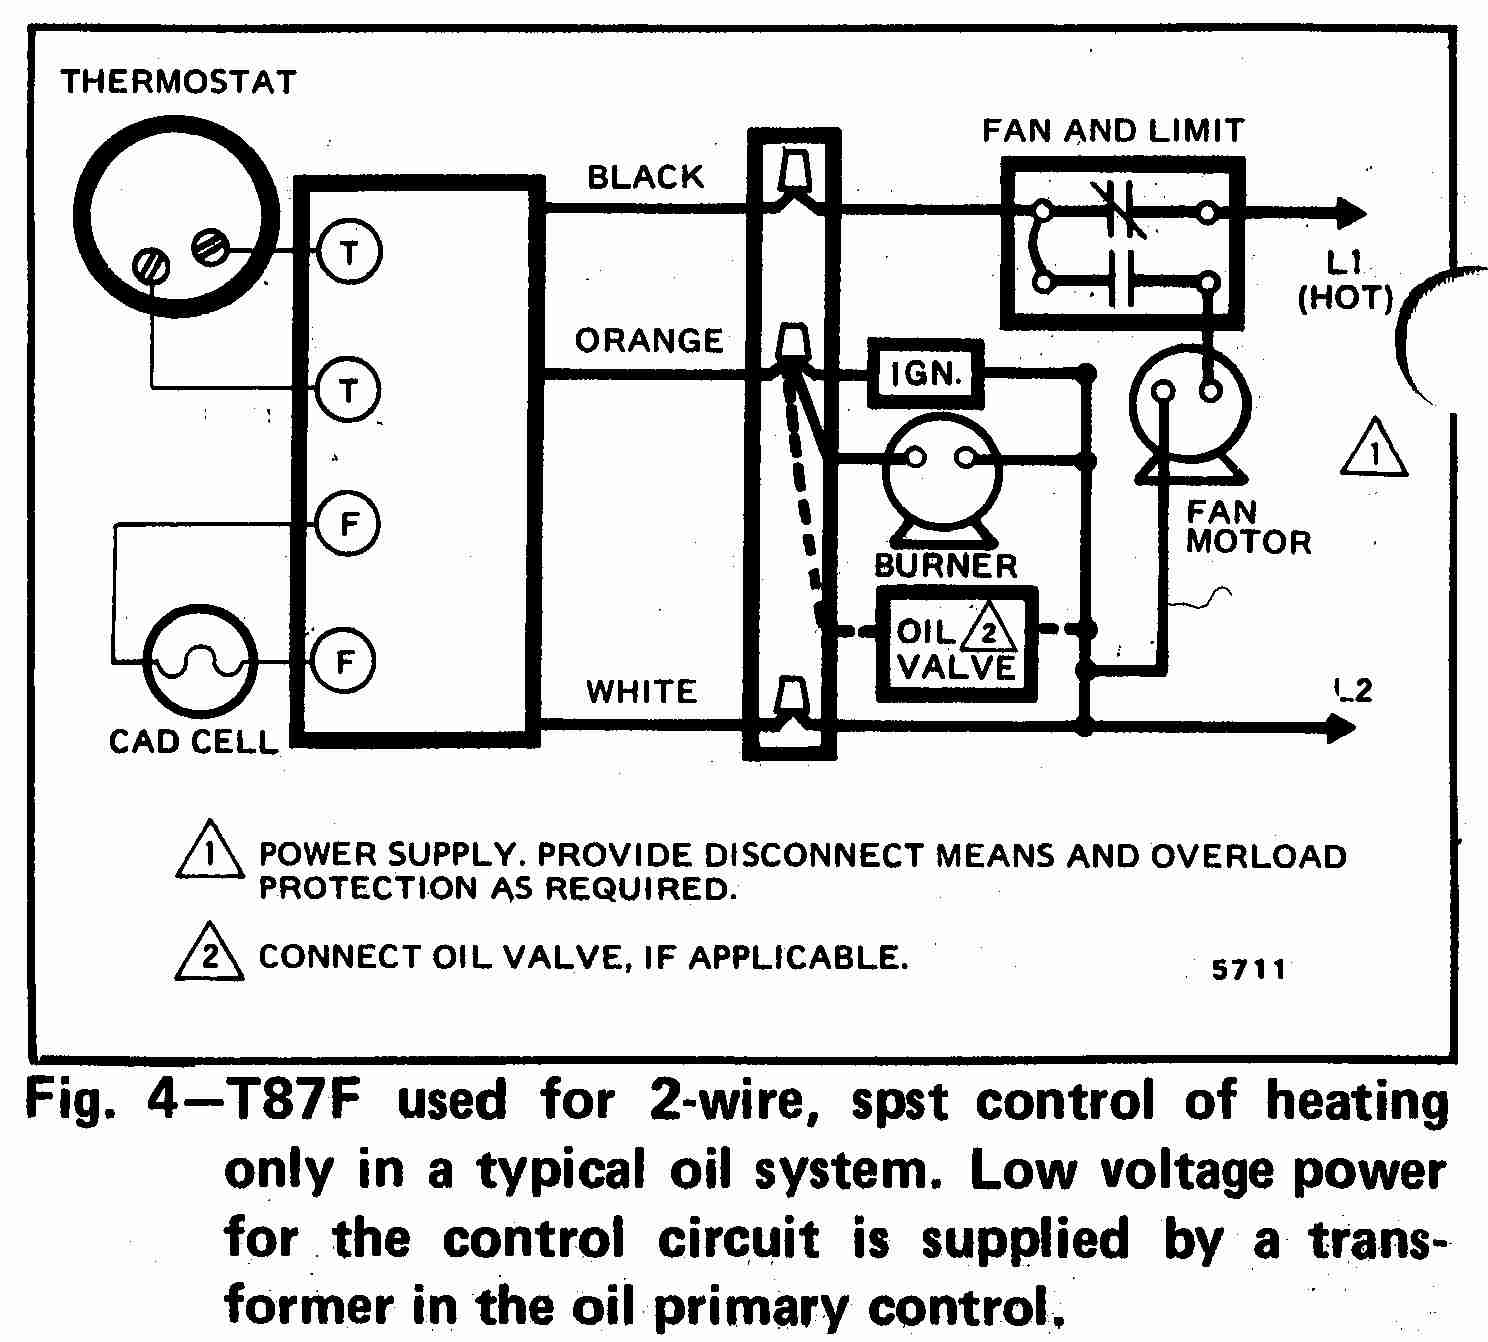 hvac system wiring explore wiring diagram on the net • basic hvac wiring systems wiring diagram schematics rh ksefanzone com hvac system wiring hvac system electrical